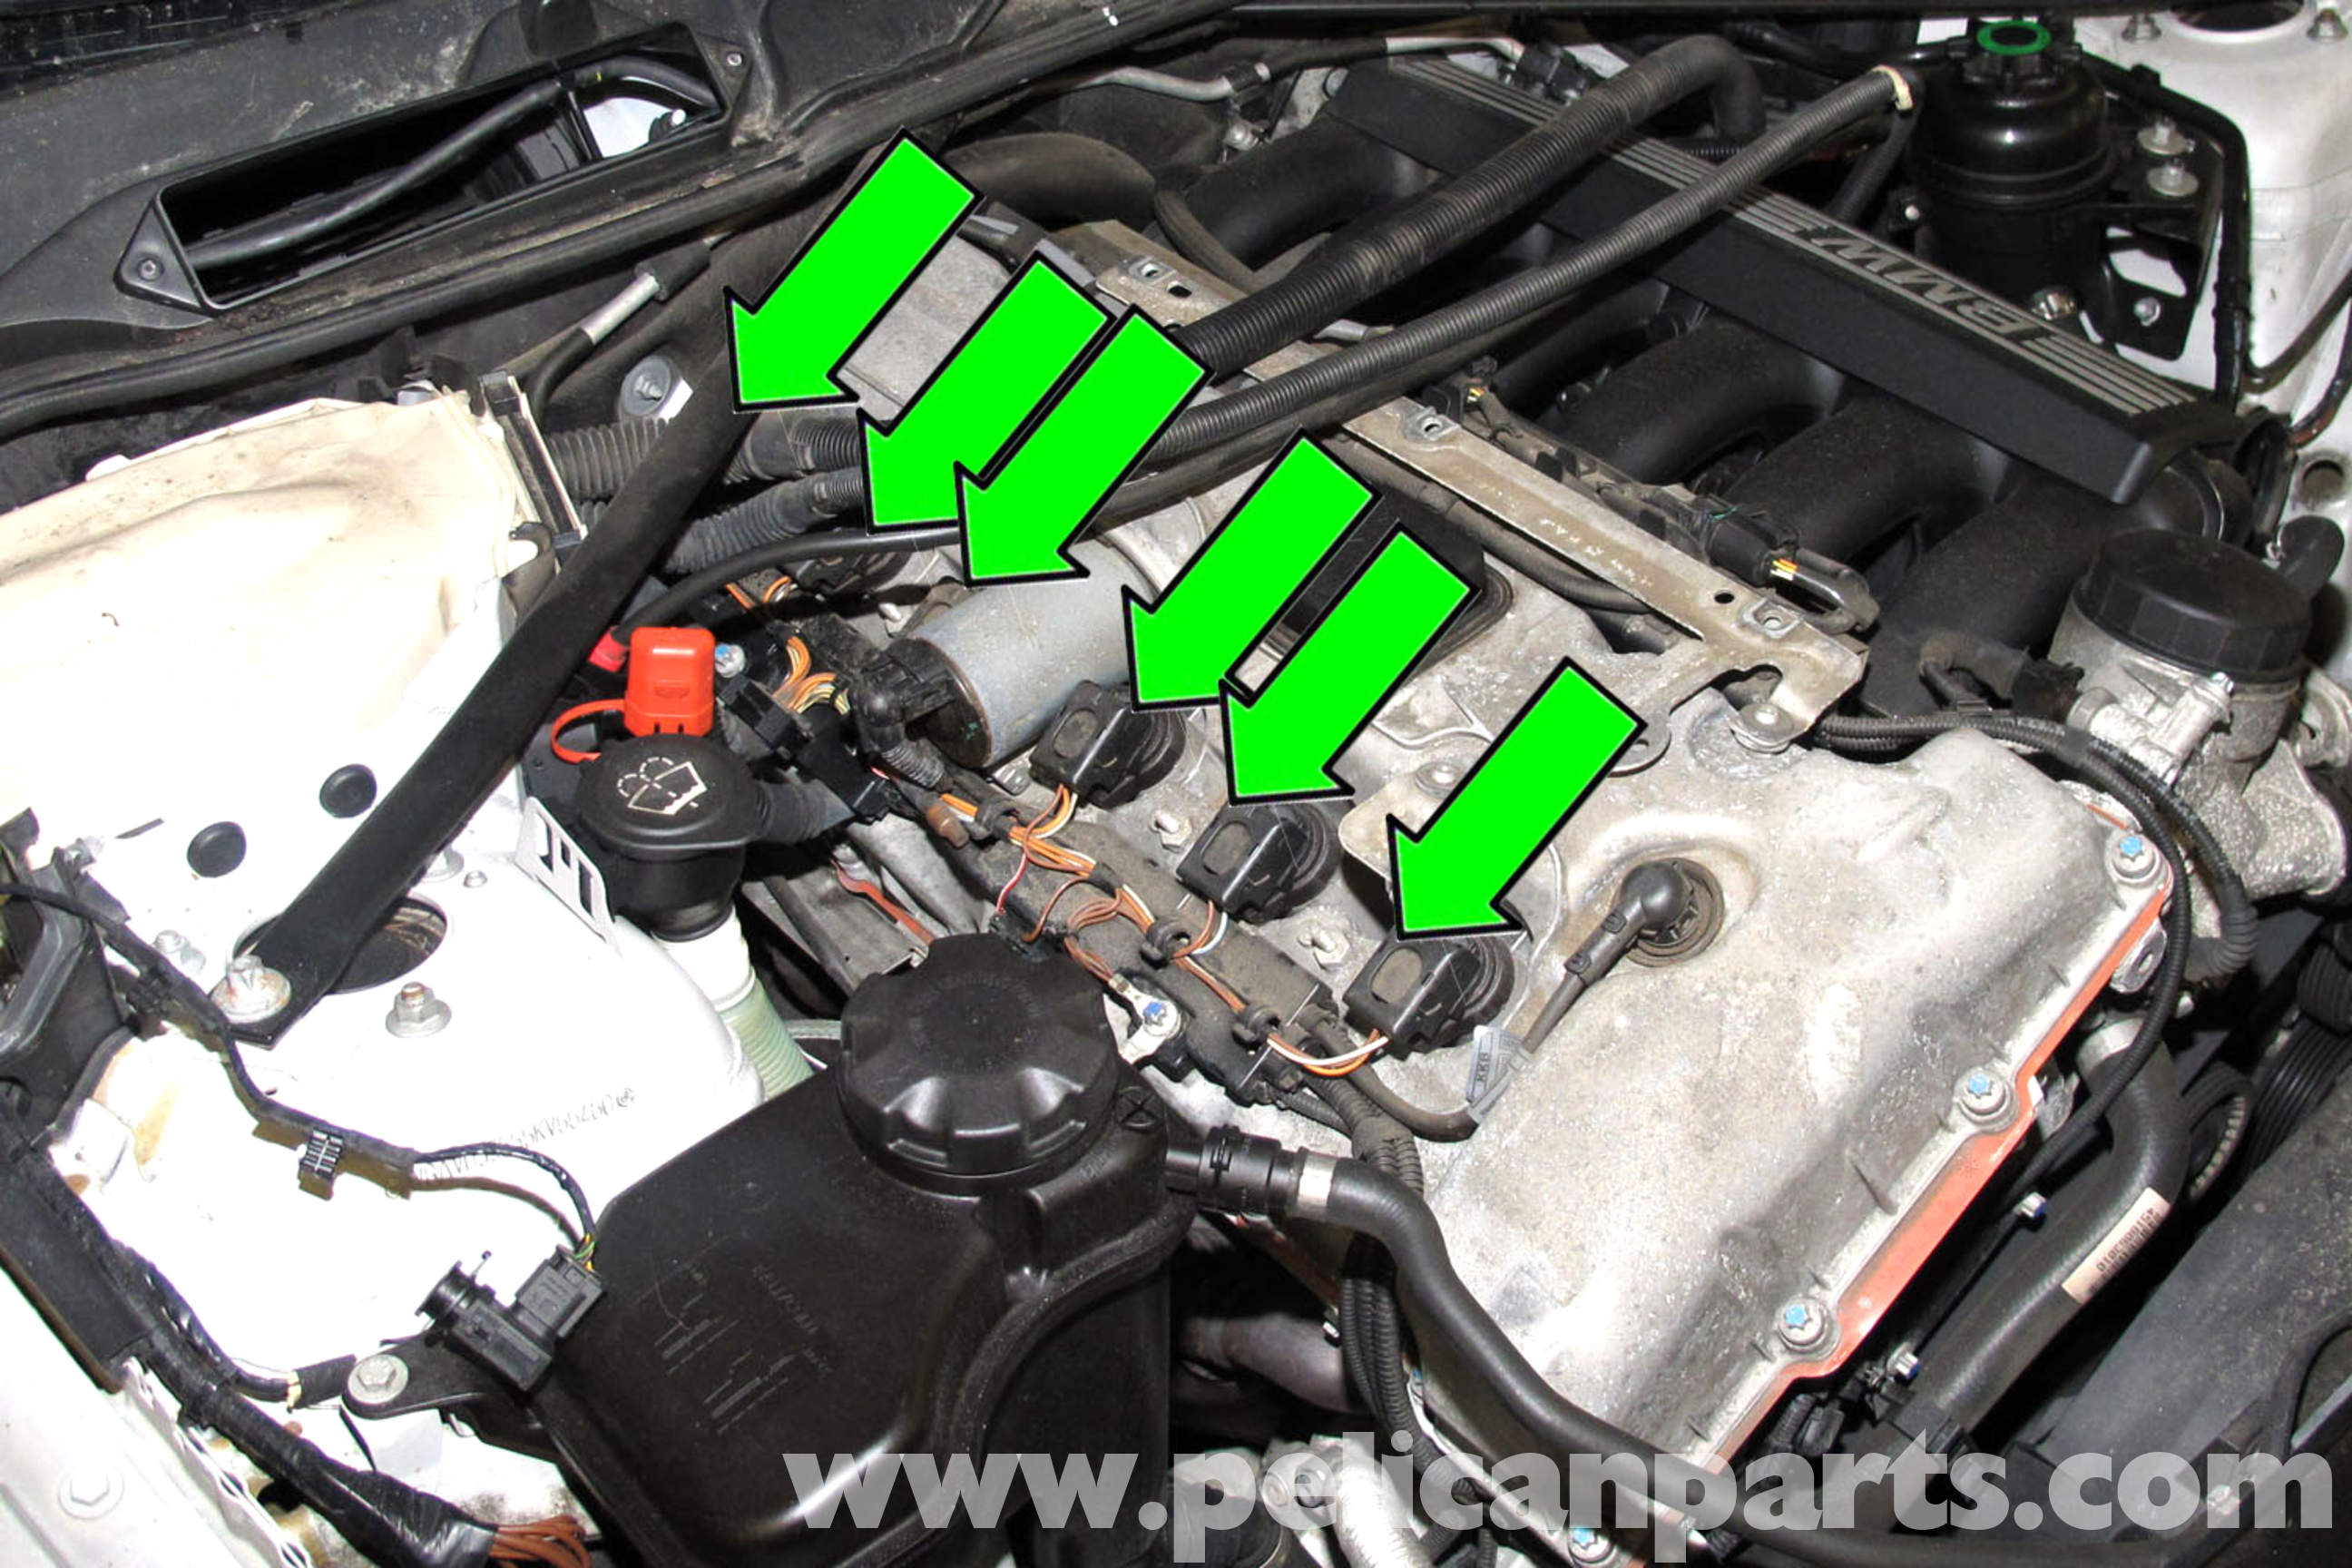 bmw e90 spark plug and coil replacement e91 e92 e93 pelican large image extra large image